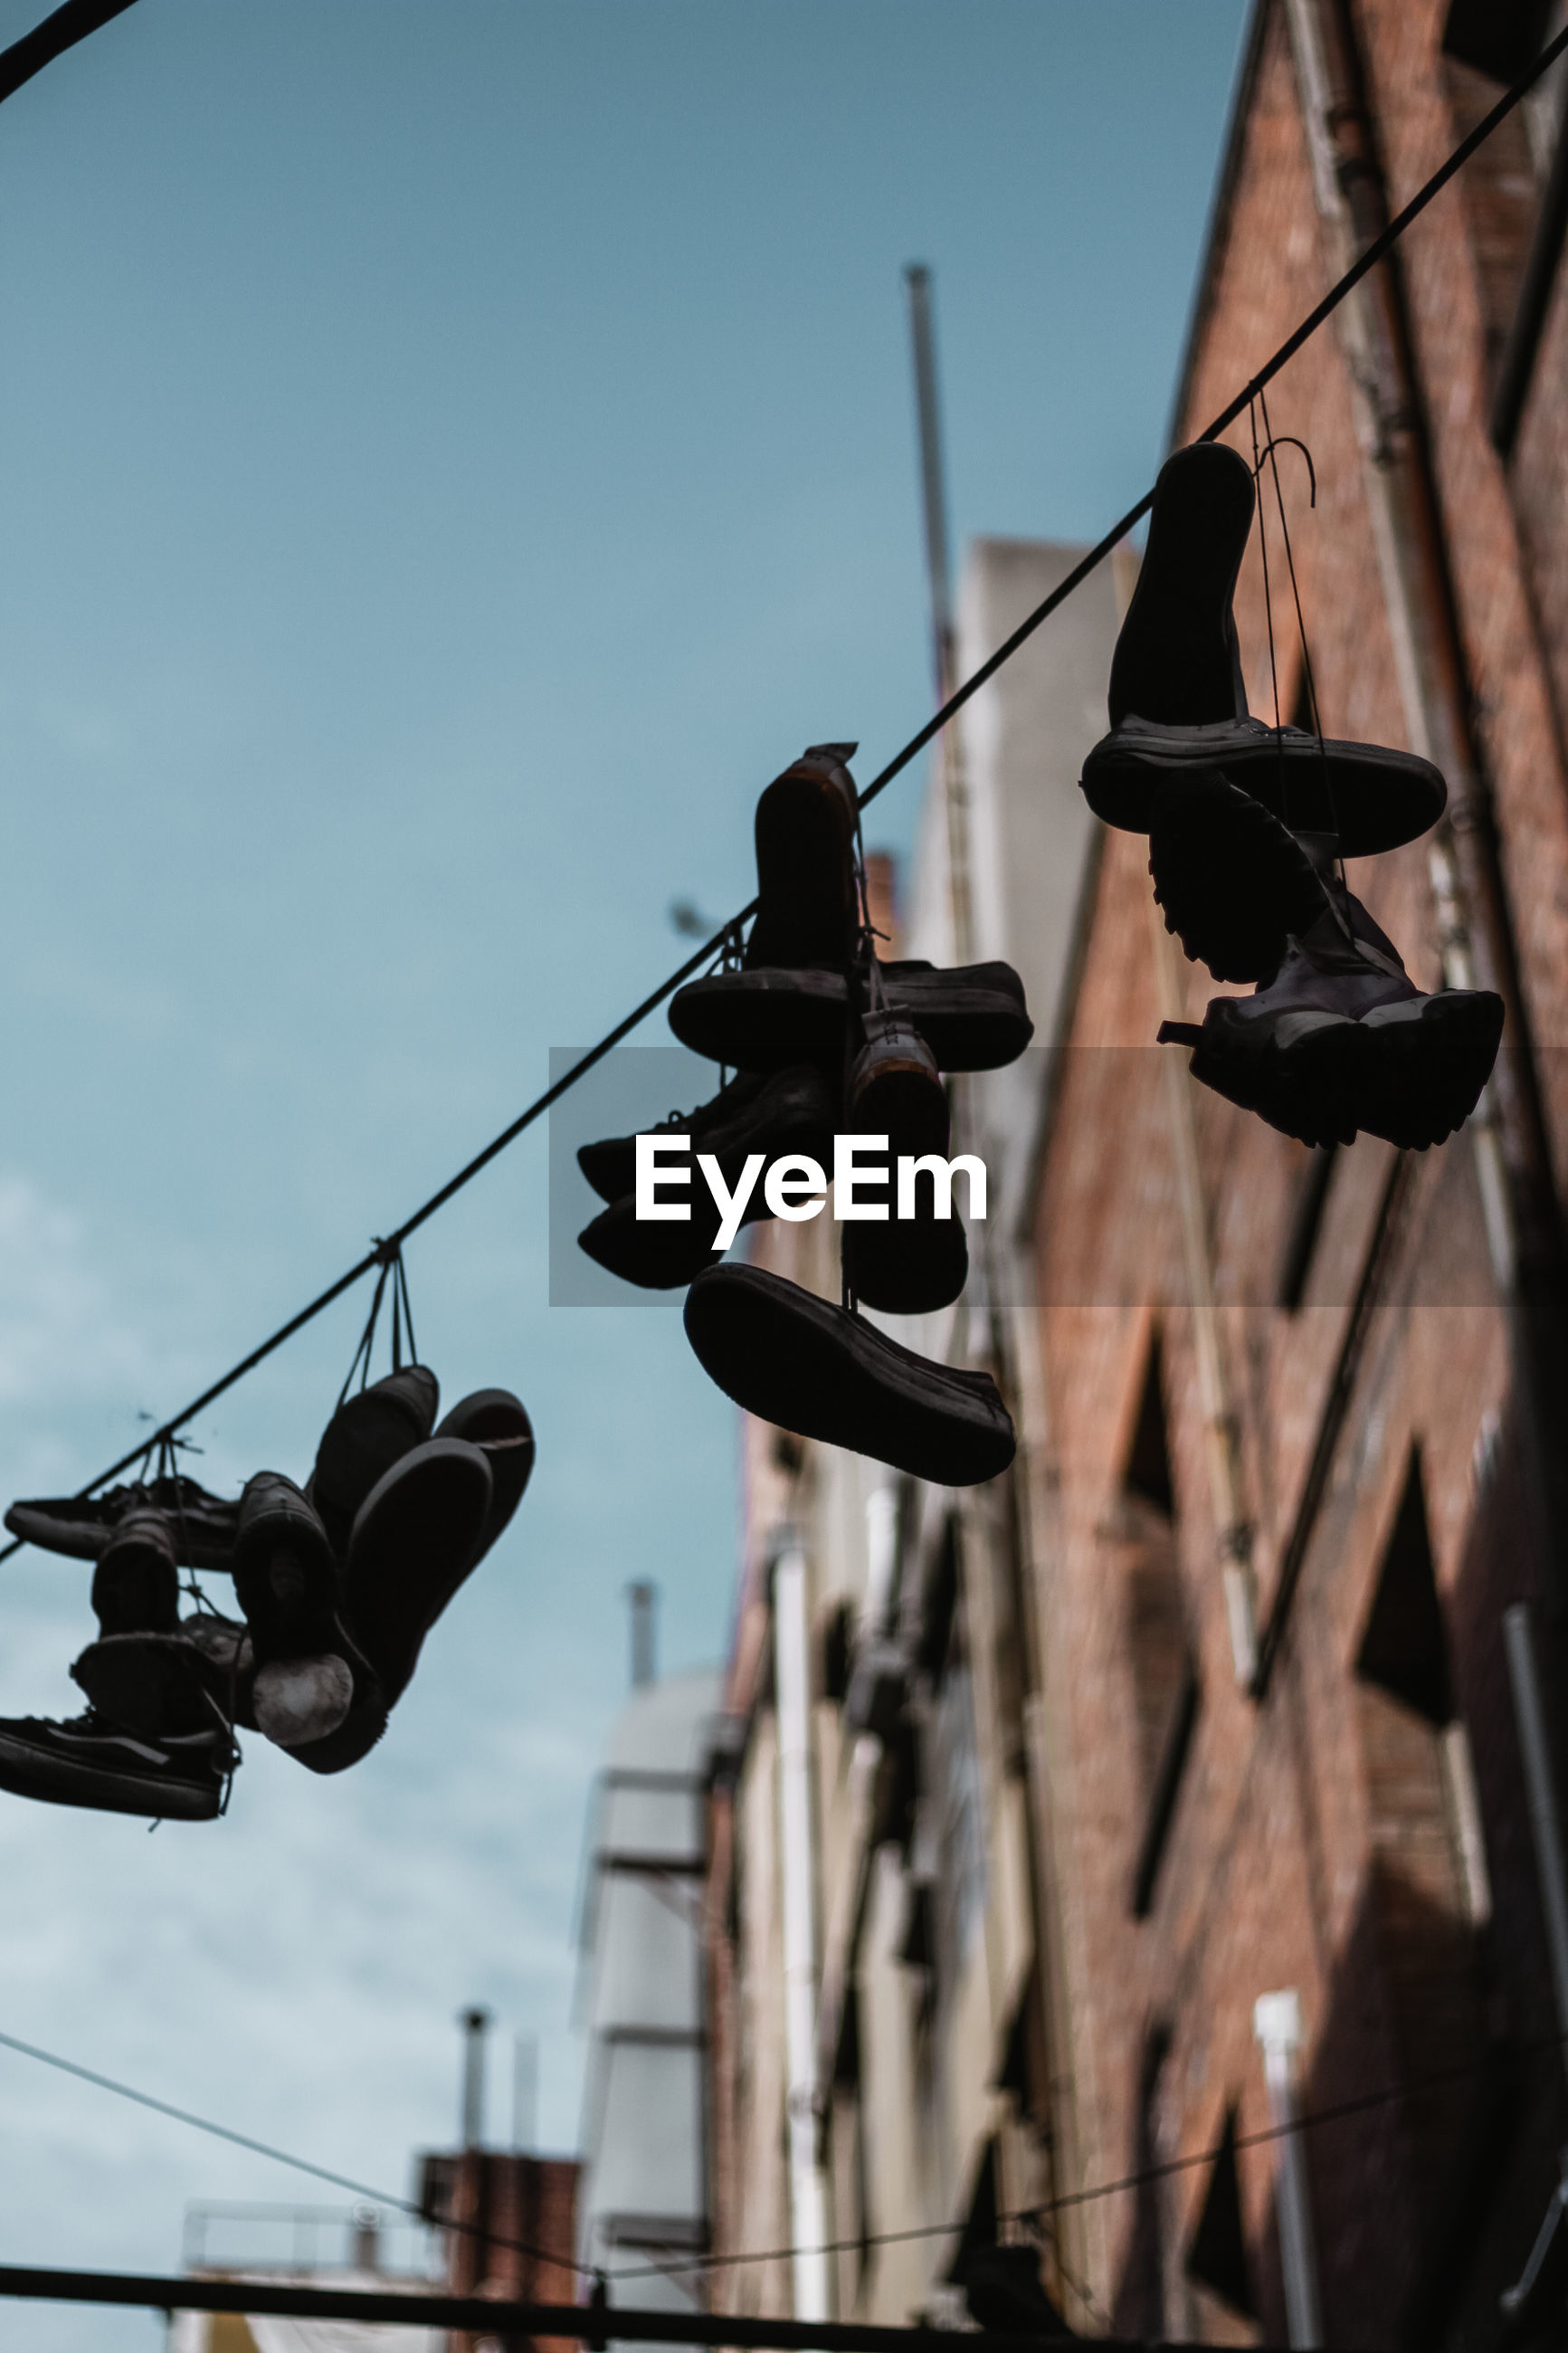 LOW ANGLE VIEW OF SHOES AGAINST THE SKY